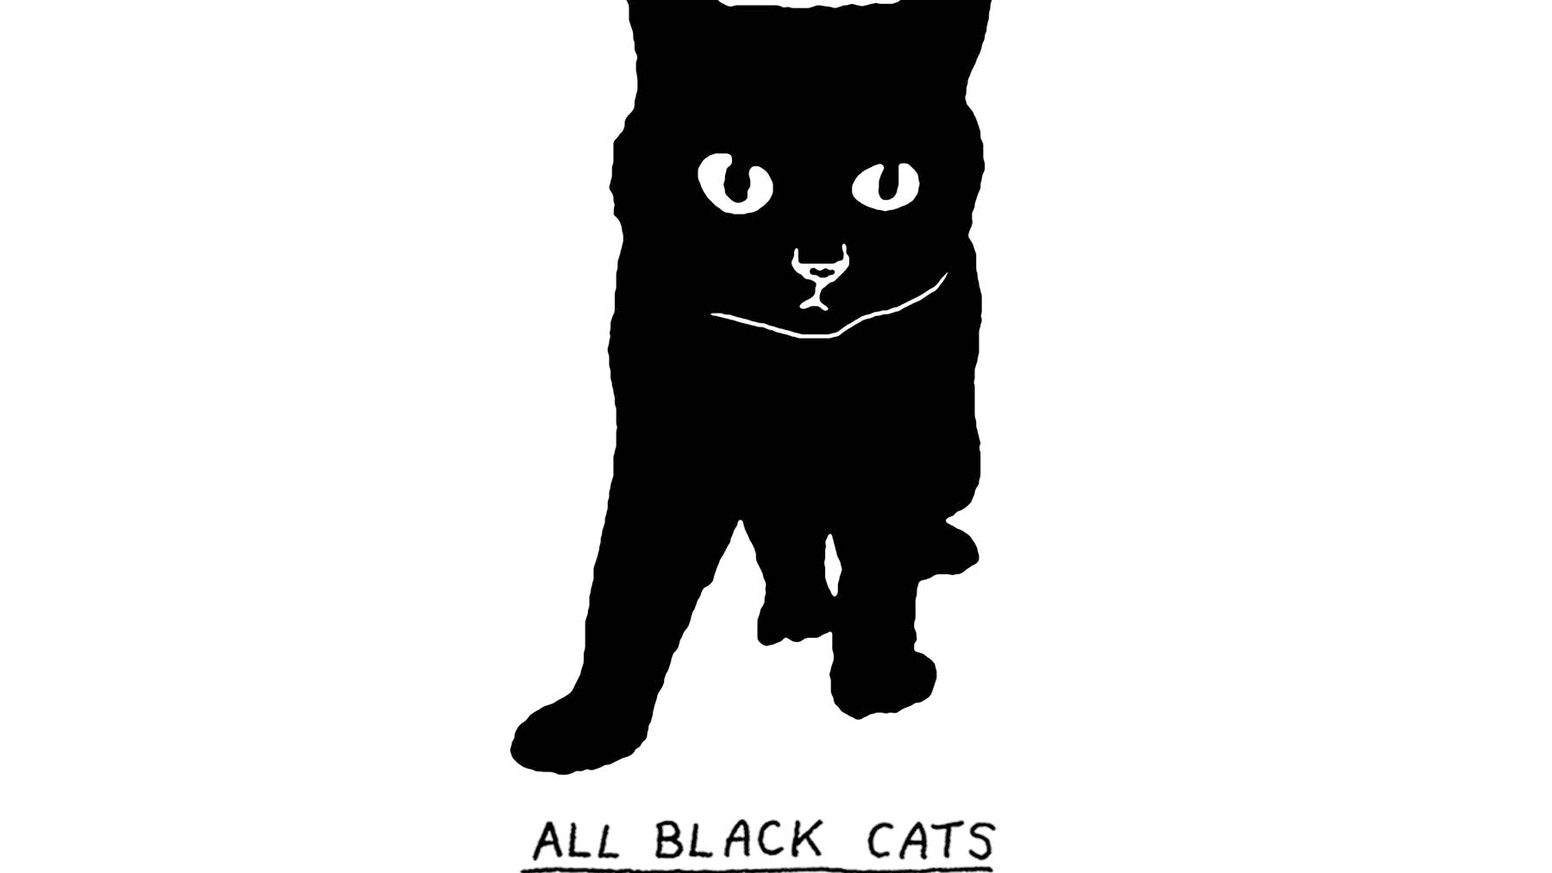 The debut book from STUDIO GOLDSPARKLE (Peter Arkle & Amy Goldwasser), 50 entirely hand-drawn, entirely unique, entirely All Black Cats